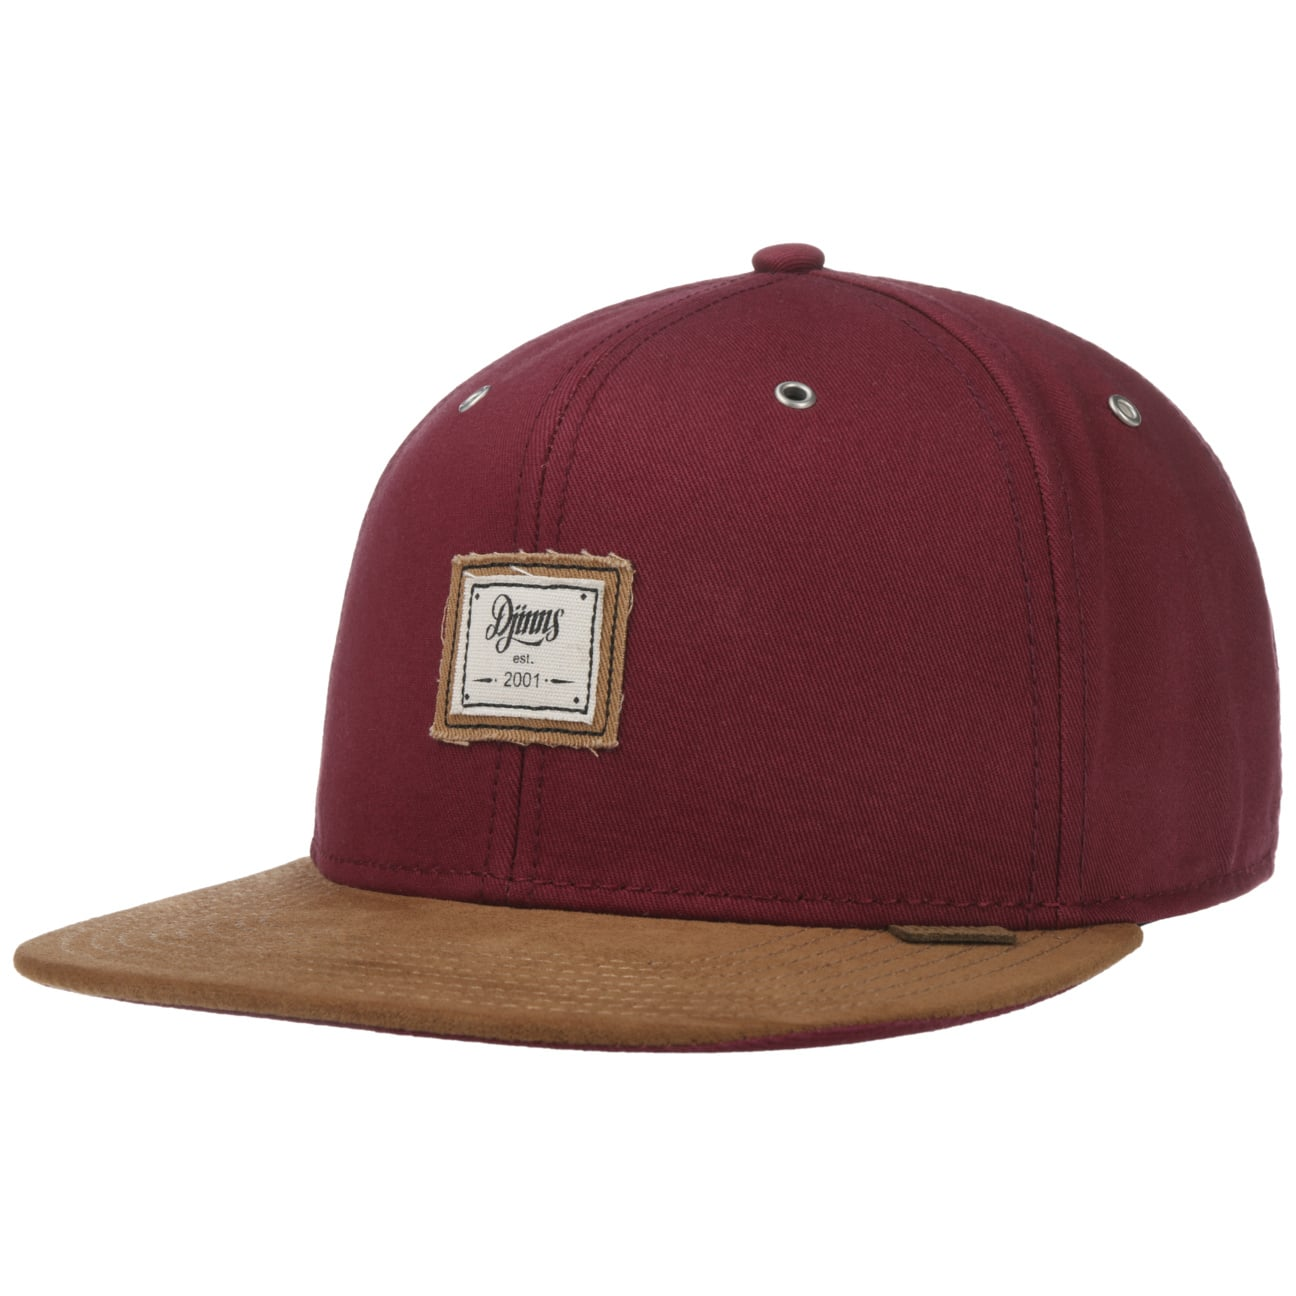 6 Panel Canvas Snapback Cap by Djinns